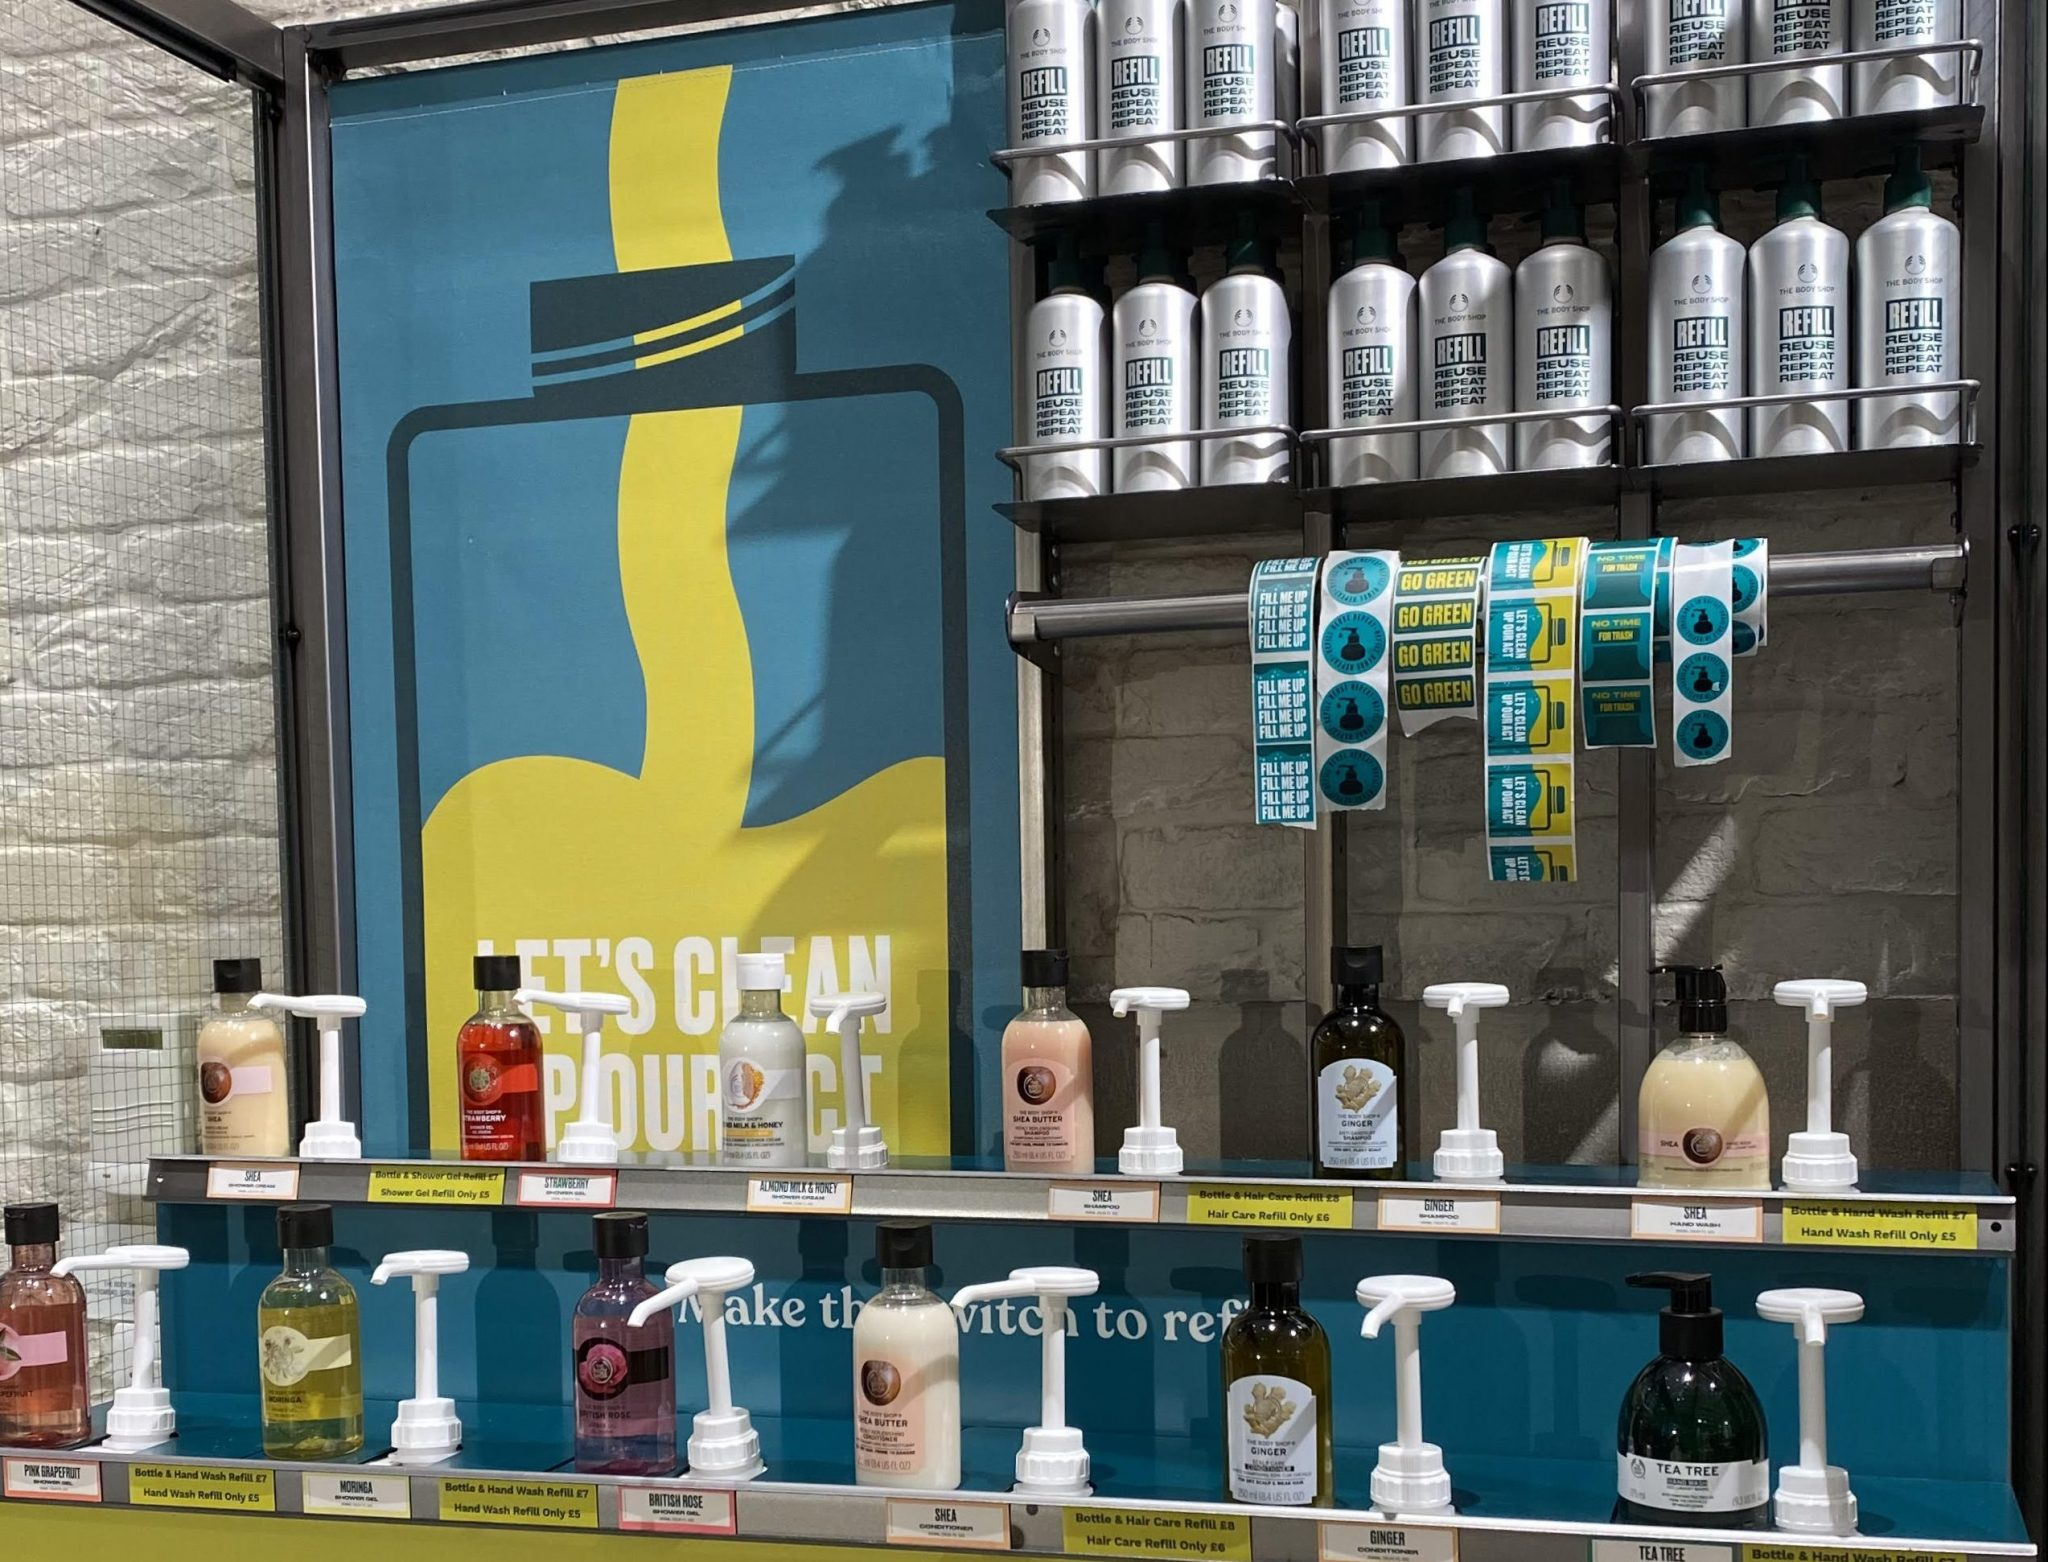 The Body Shop is runnign a Return, Recycle, Repeat initiative in stores